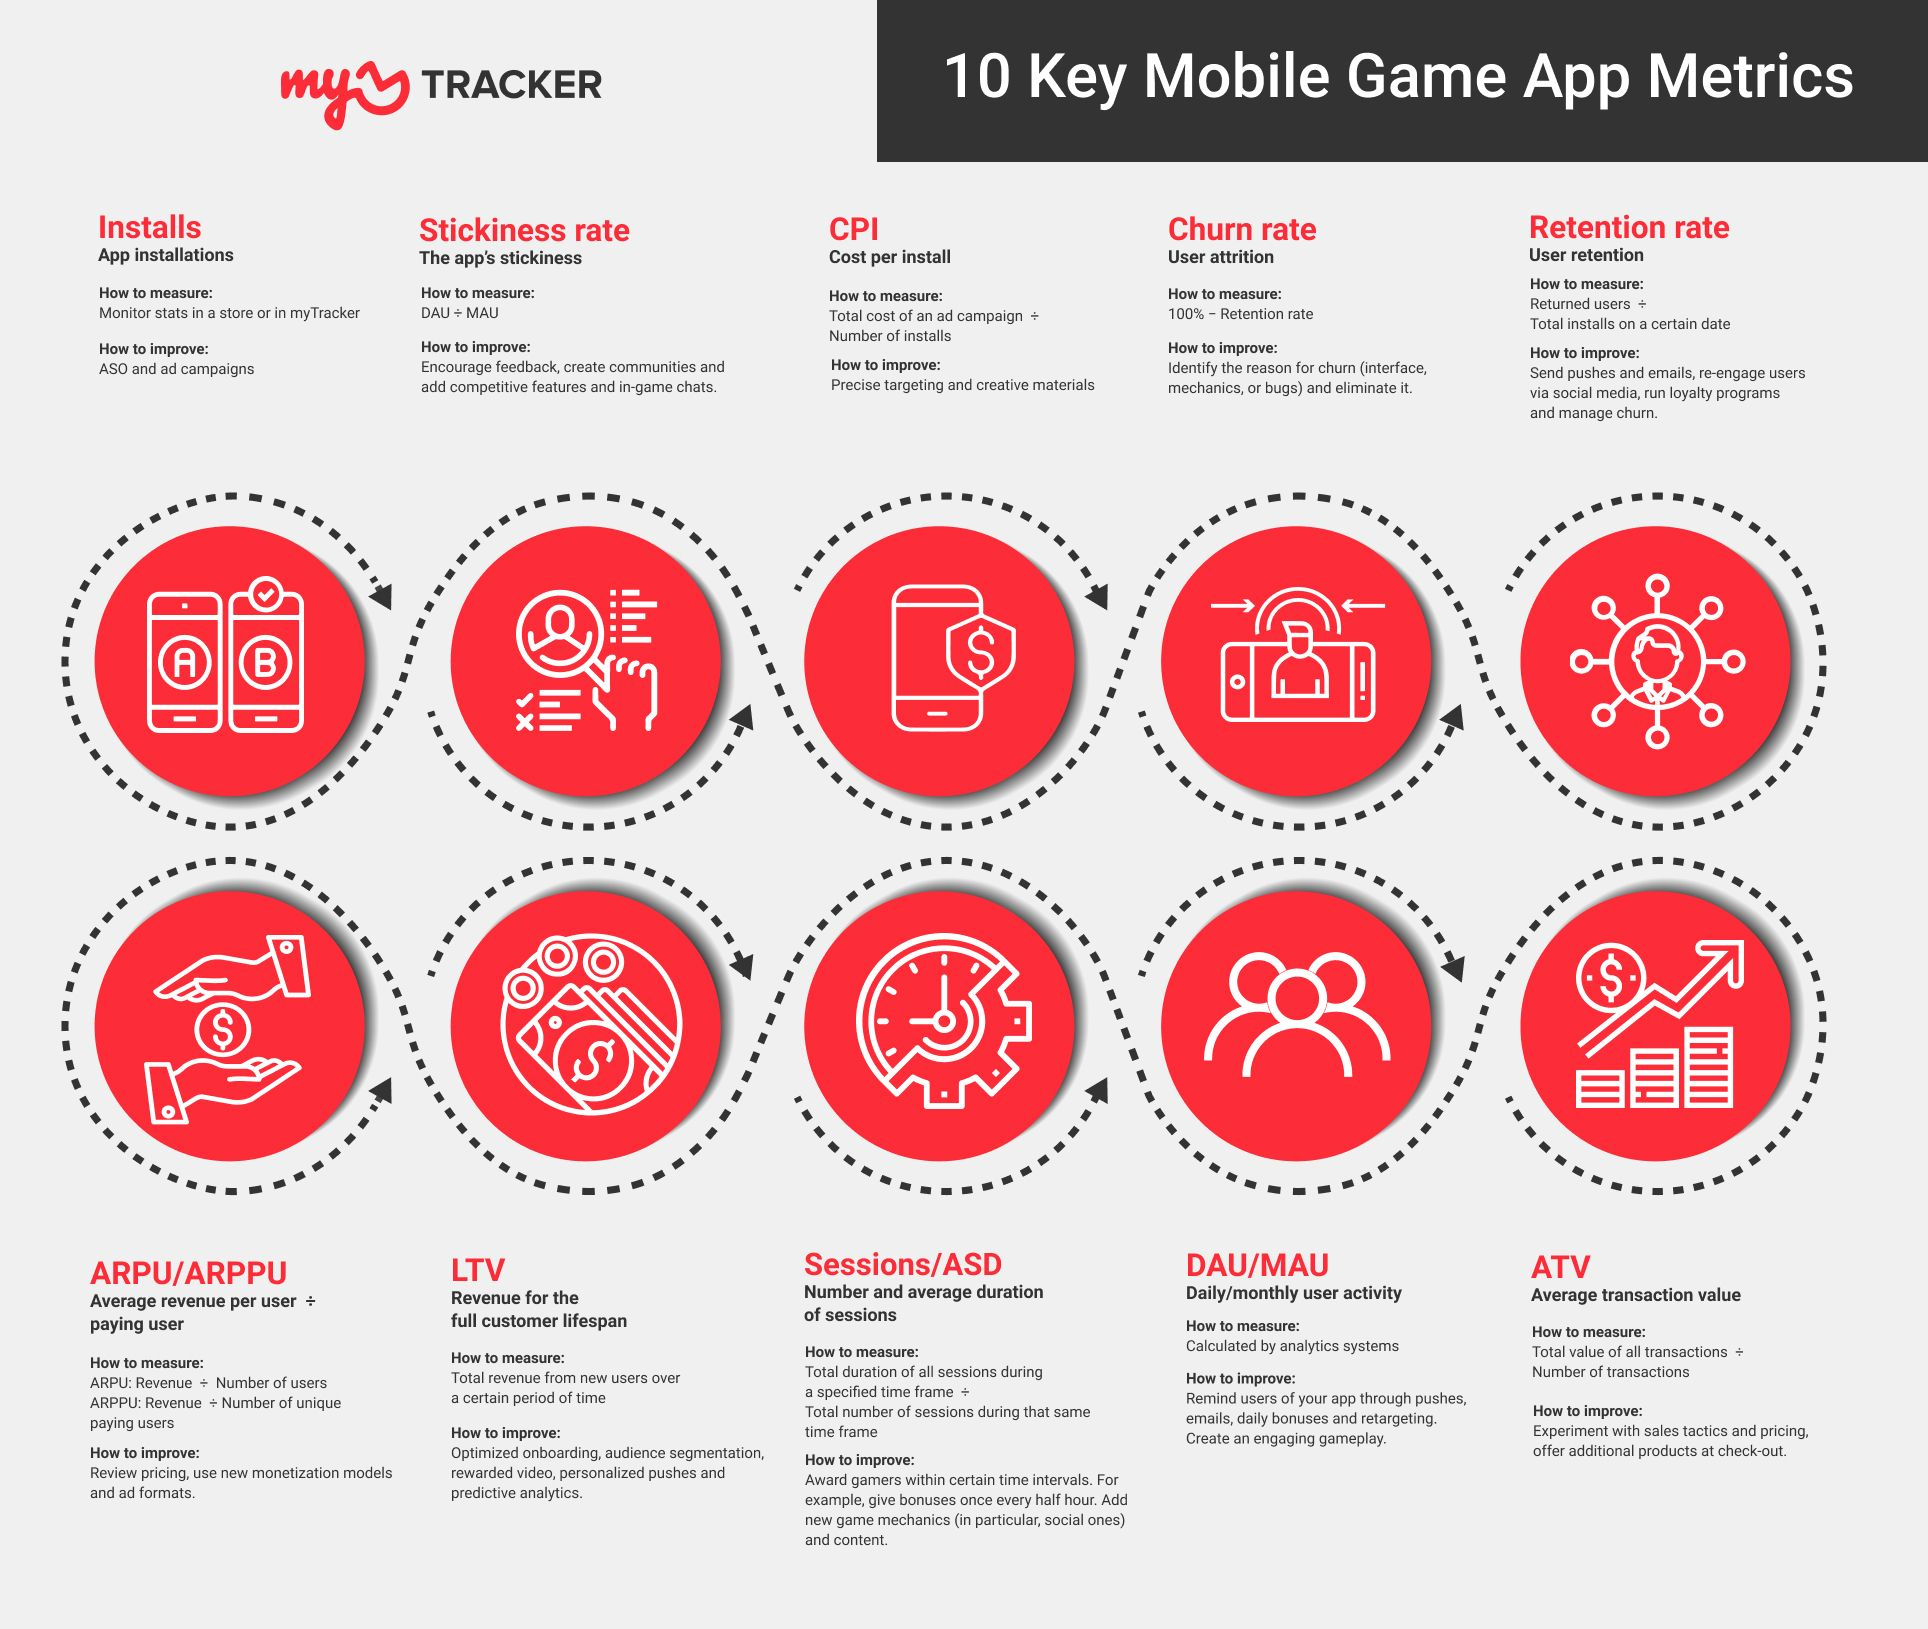 10 metrics for games to track